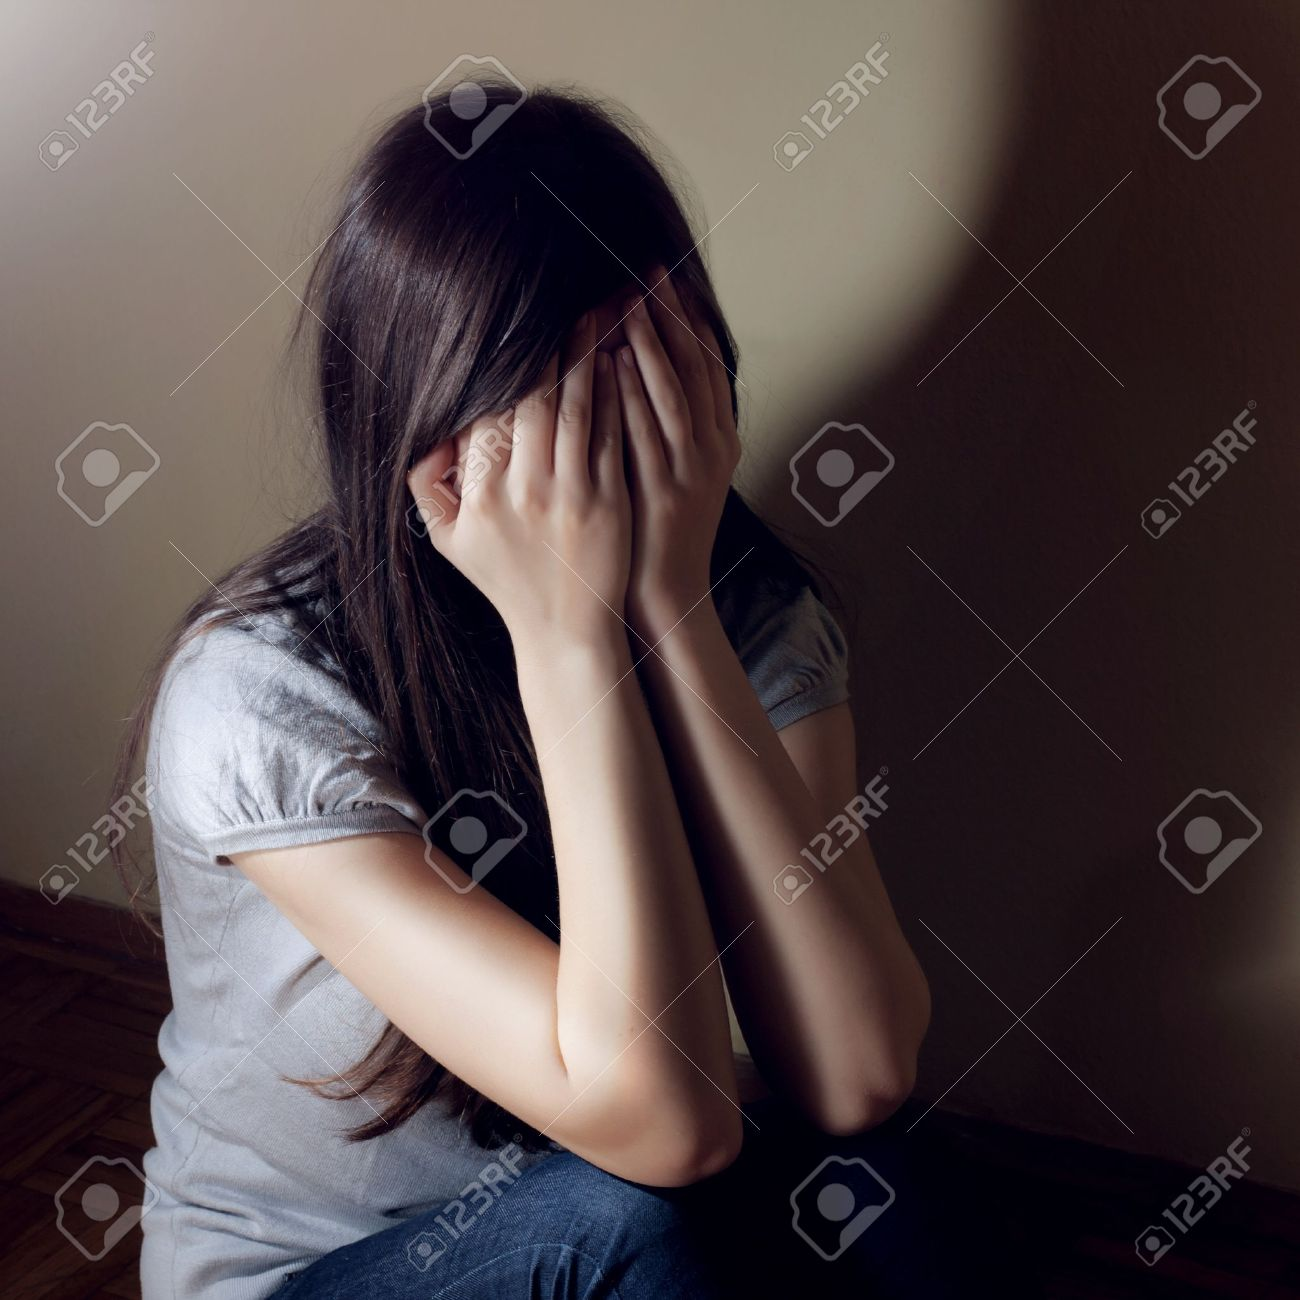 Depressed teenage girl cover her face with hand. - 12323069